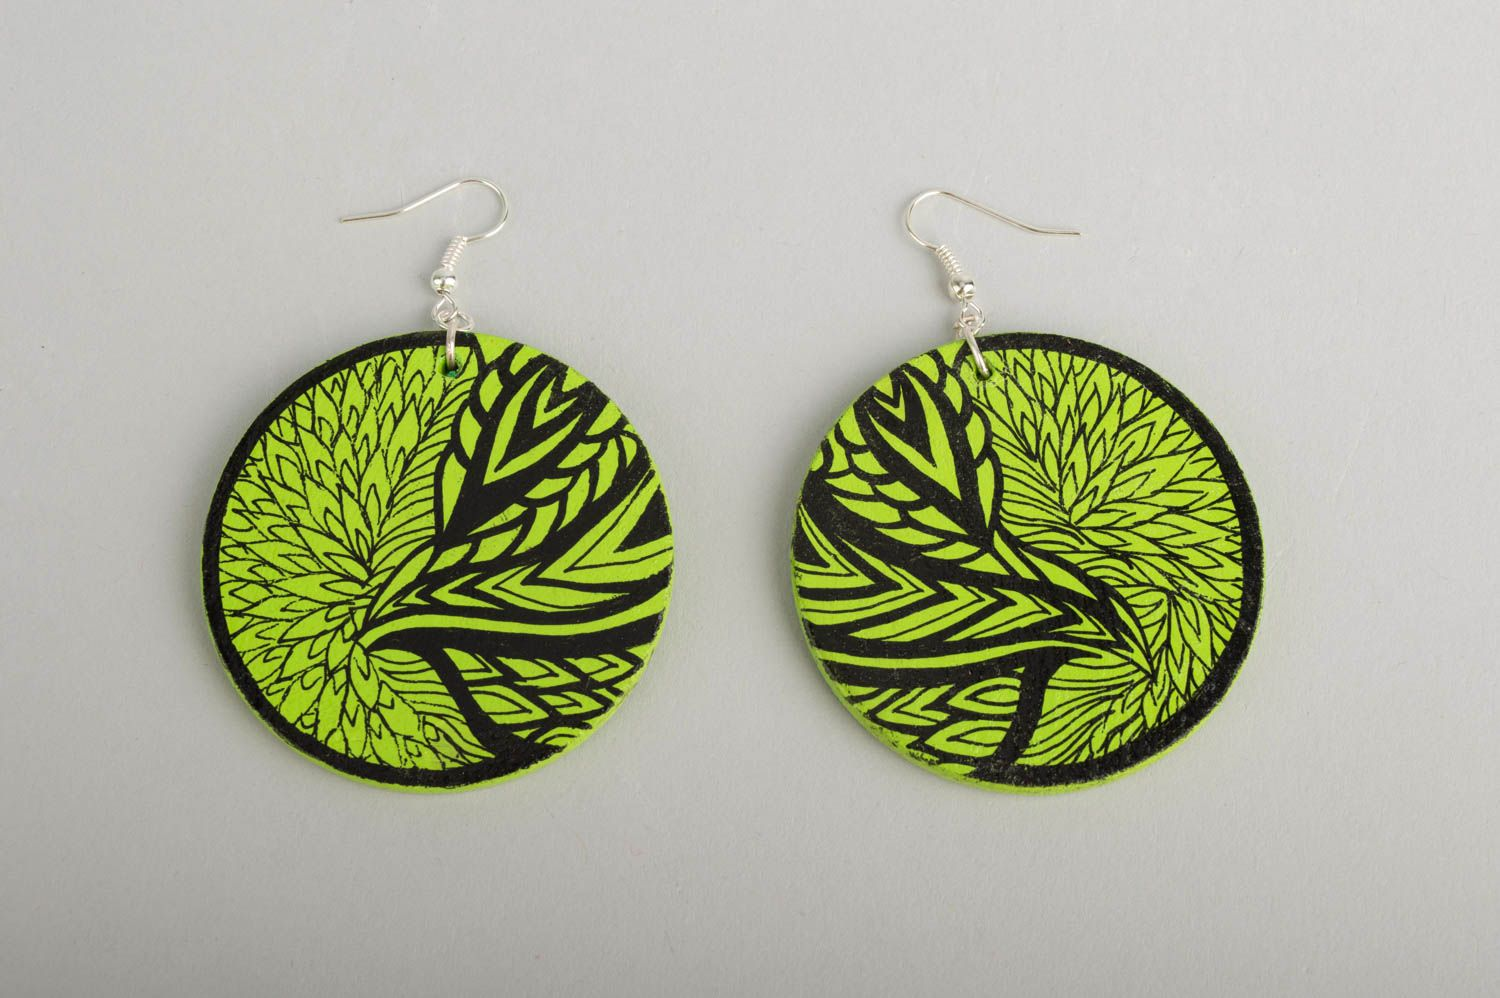 Fashion jewelry handmade earrings wooden jewelry designer accessories gift ideas photo 2